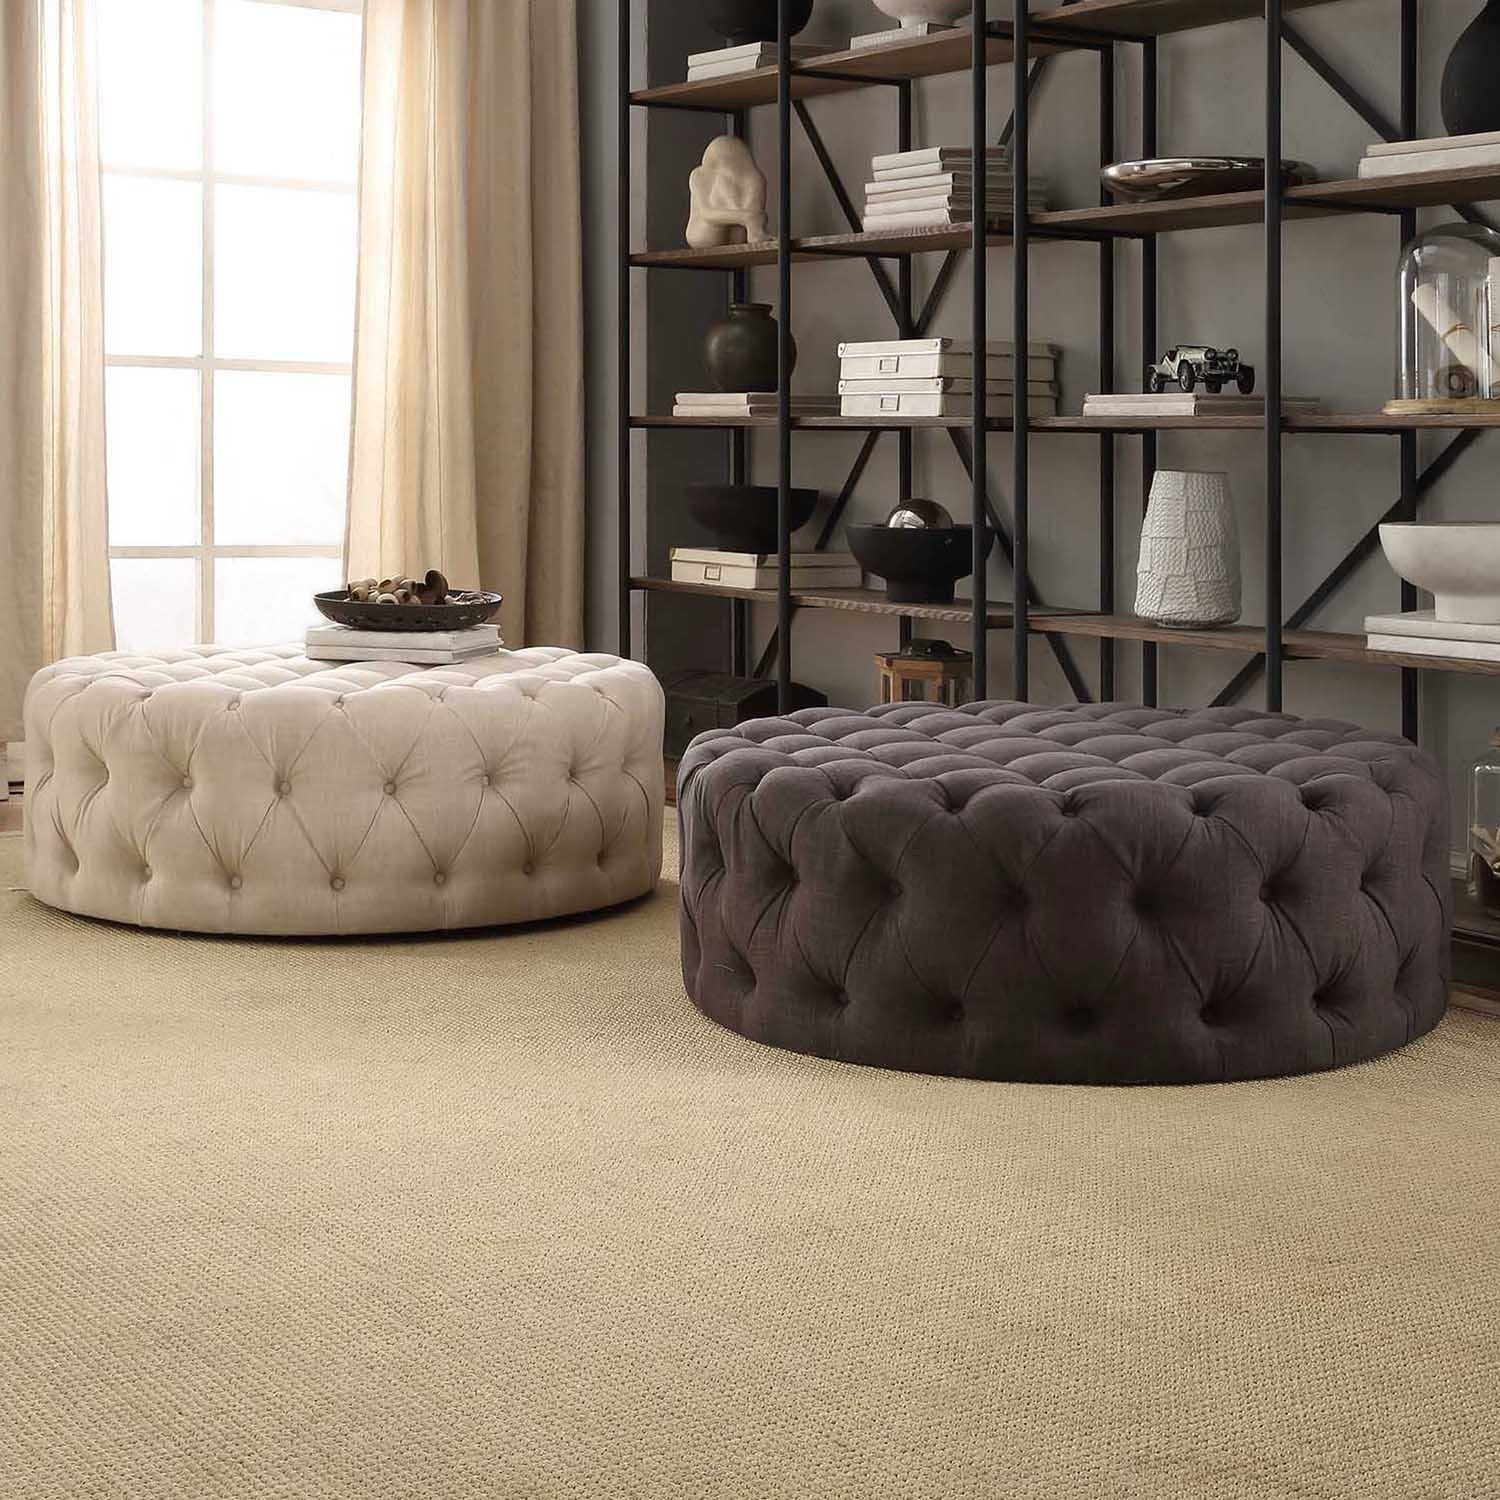 Remarkable Knightsbridge Round Linen Tufted Cocktail Ottoman With Ncnpc Chair Design For Home Ncnpcorg